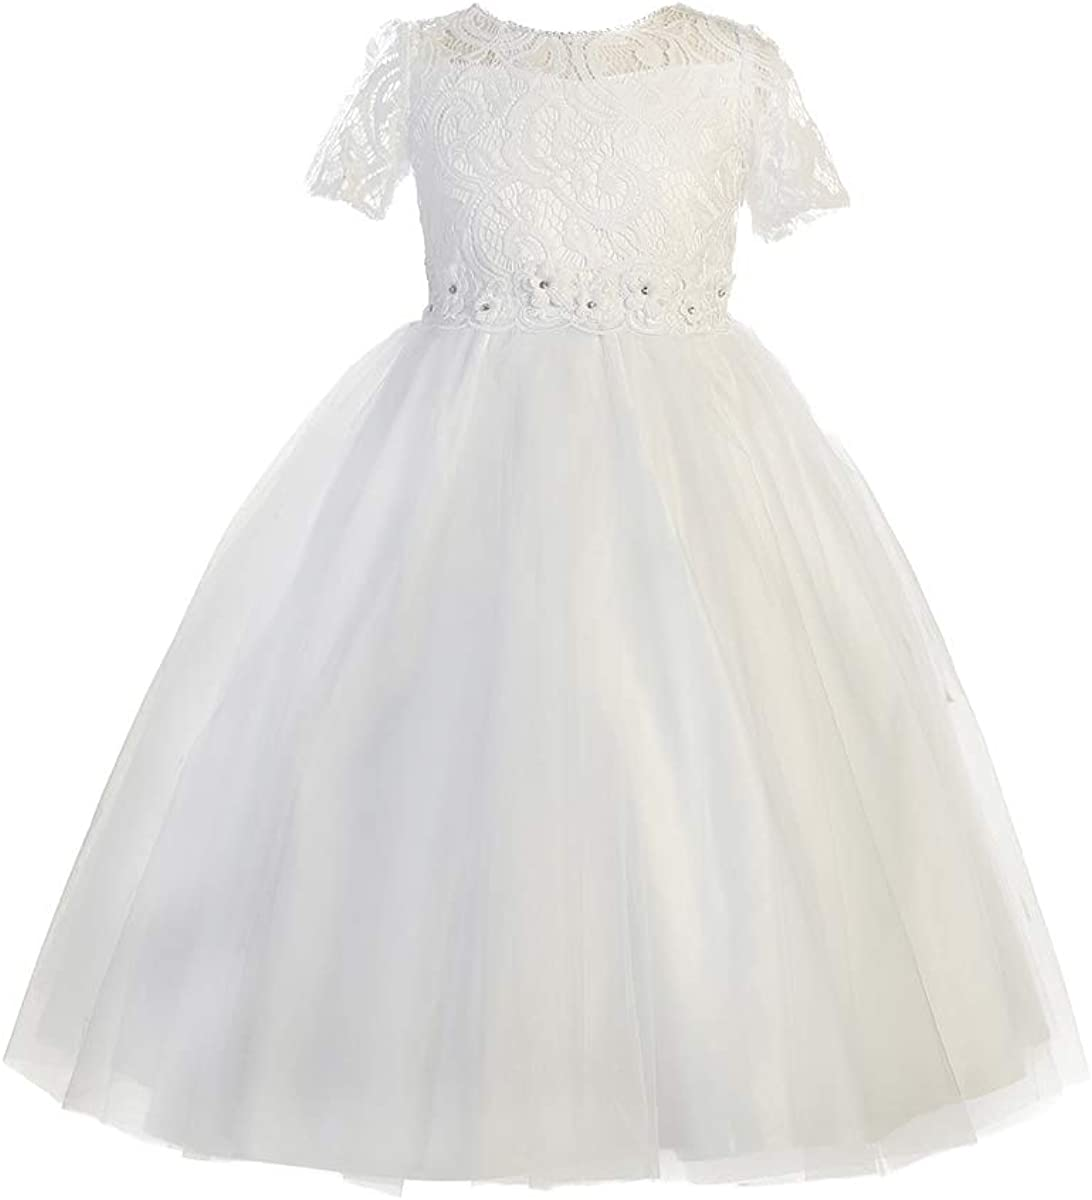 Blossom BL307 Short Sleeve Lace Tulle Dress w/Floral Waistband